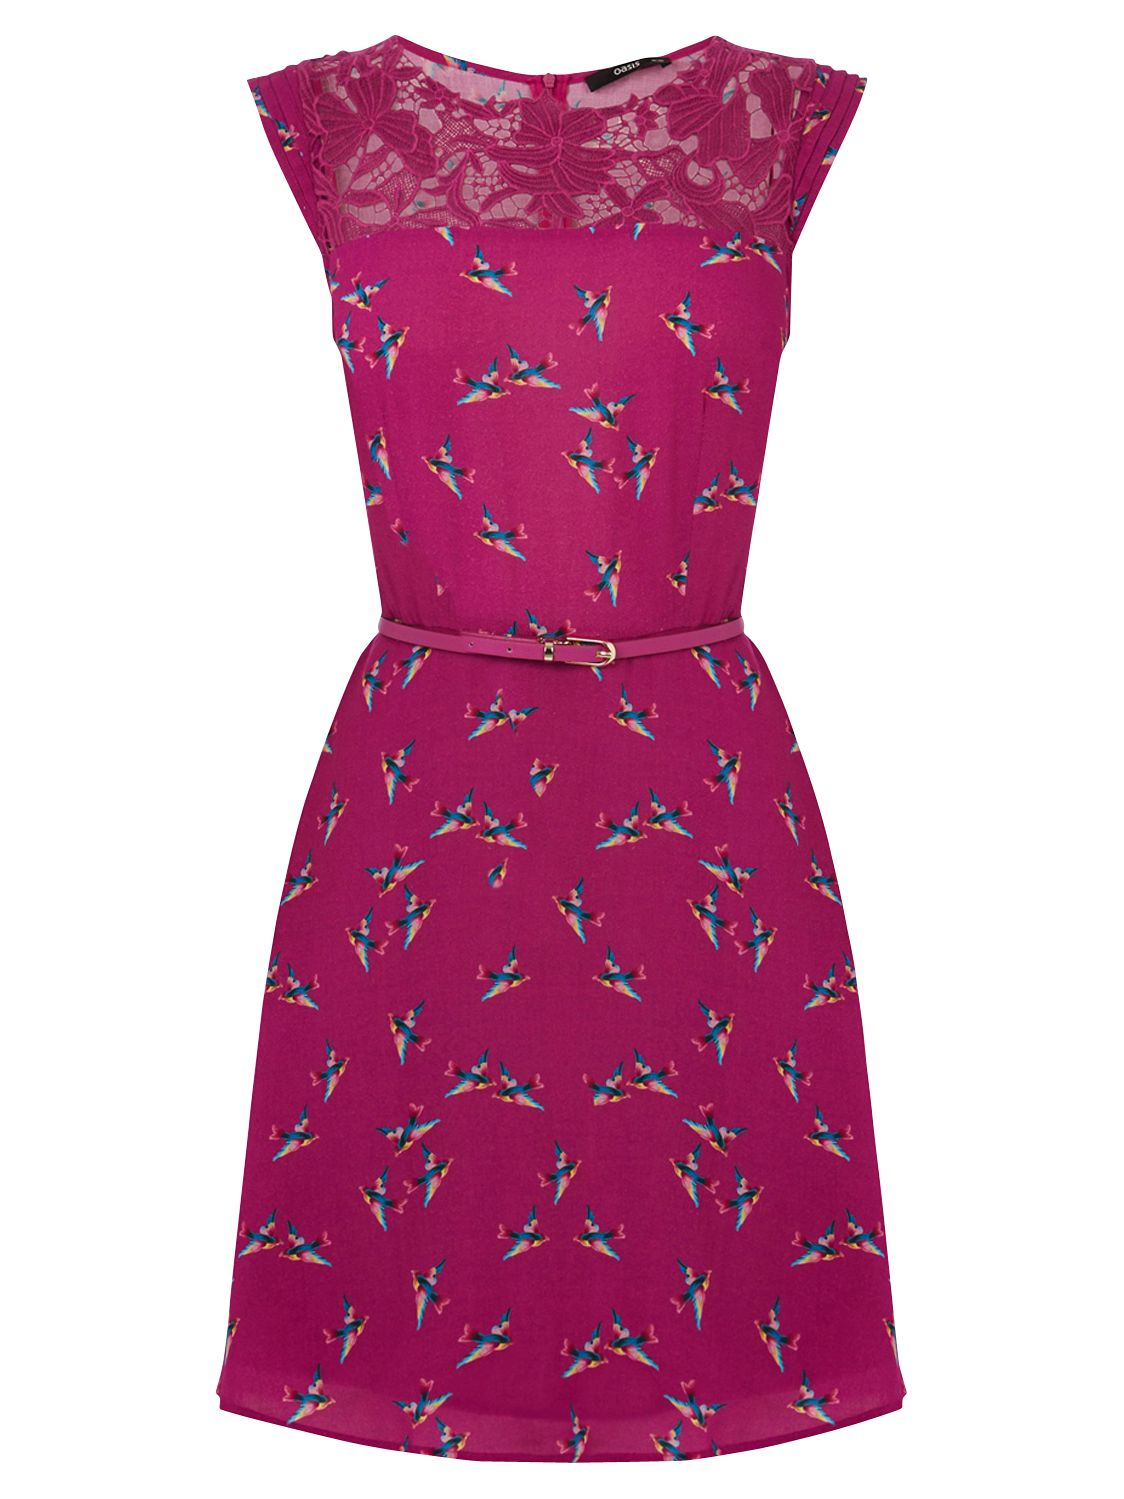 oasis bloom bird lace trim skater dress berry, oasis, bloom, bird, lace, trim, skater, dress, berry, 14|10|8|16|12, women, womens dresses, 1866366